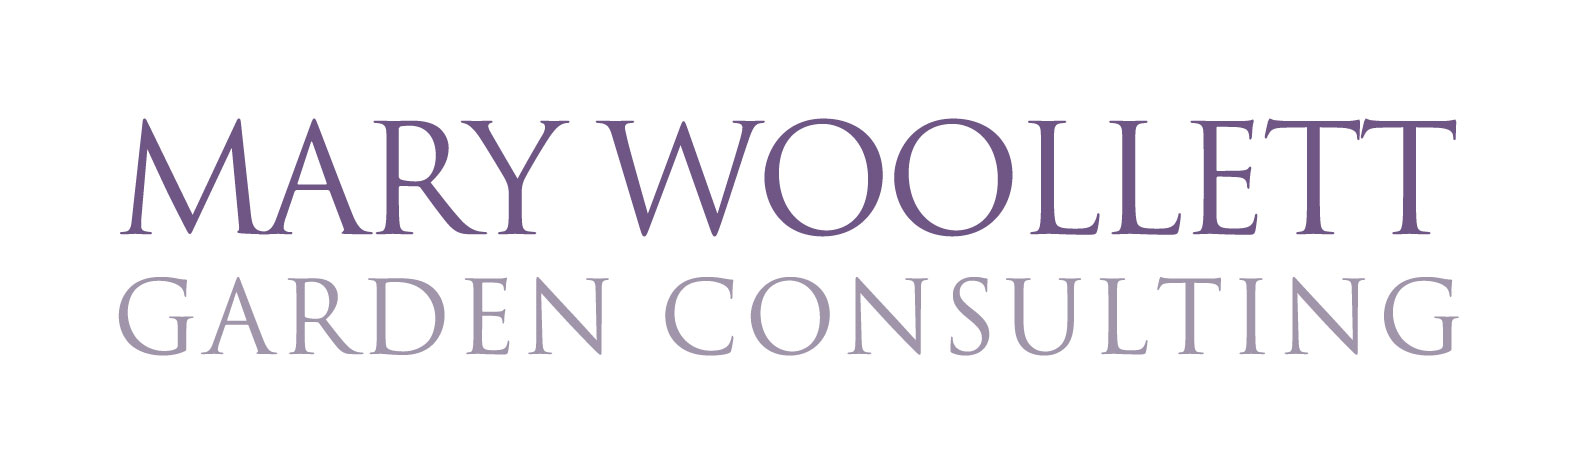 Mary Woollett Garden Consulting Logo